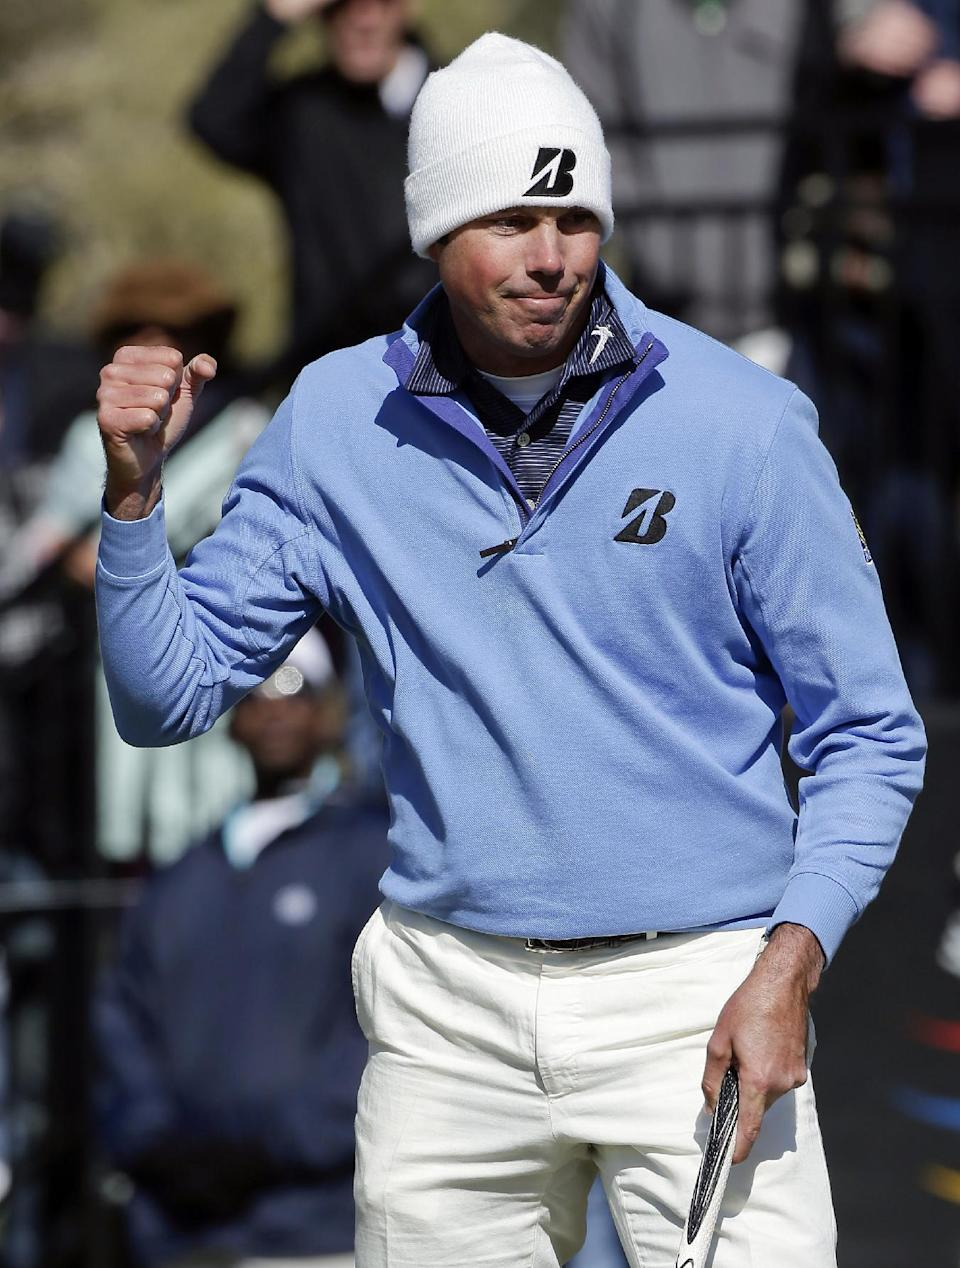 Matt Kuchar reacts after sinking a putt on the 12th green in the final round of play against Hunter Mahan during the Match Play Championship golf tournament, Sunday, Feb. 24, 2013, in Marana, Ariz. Kuchar won 2 and 1. (AP Photo/Julie Jacobson)